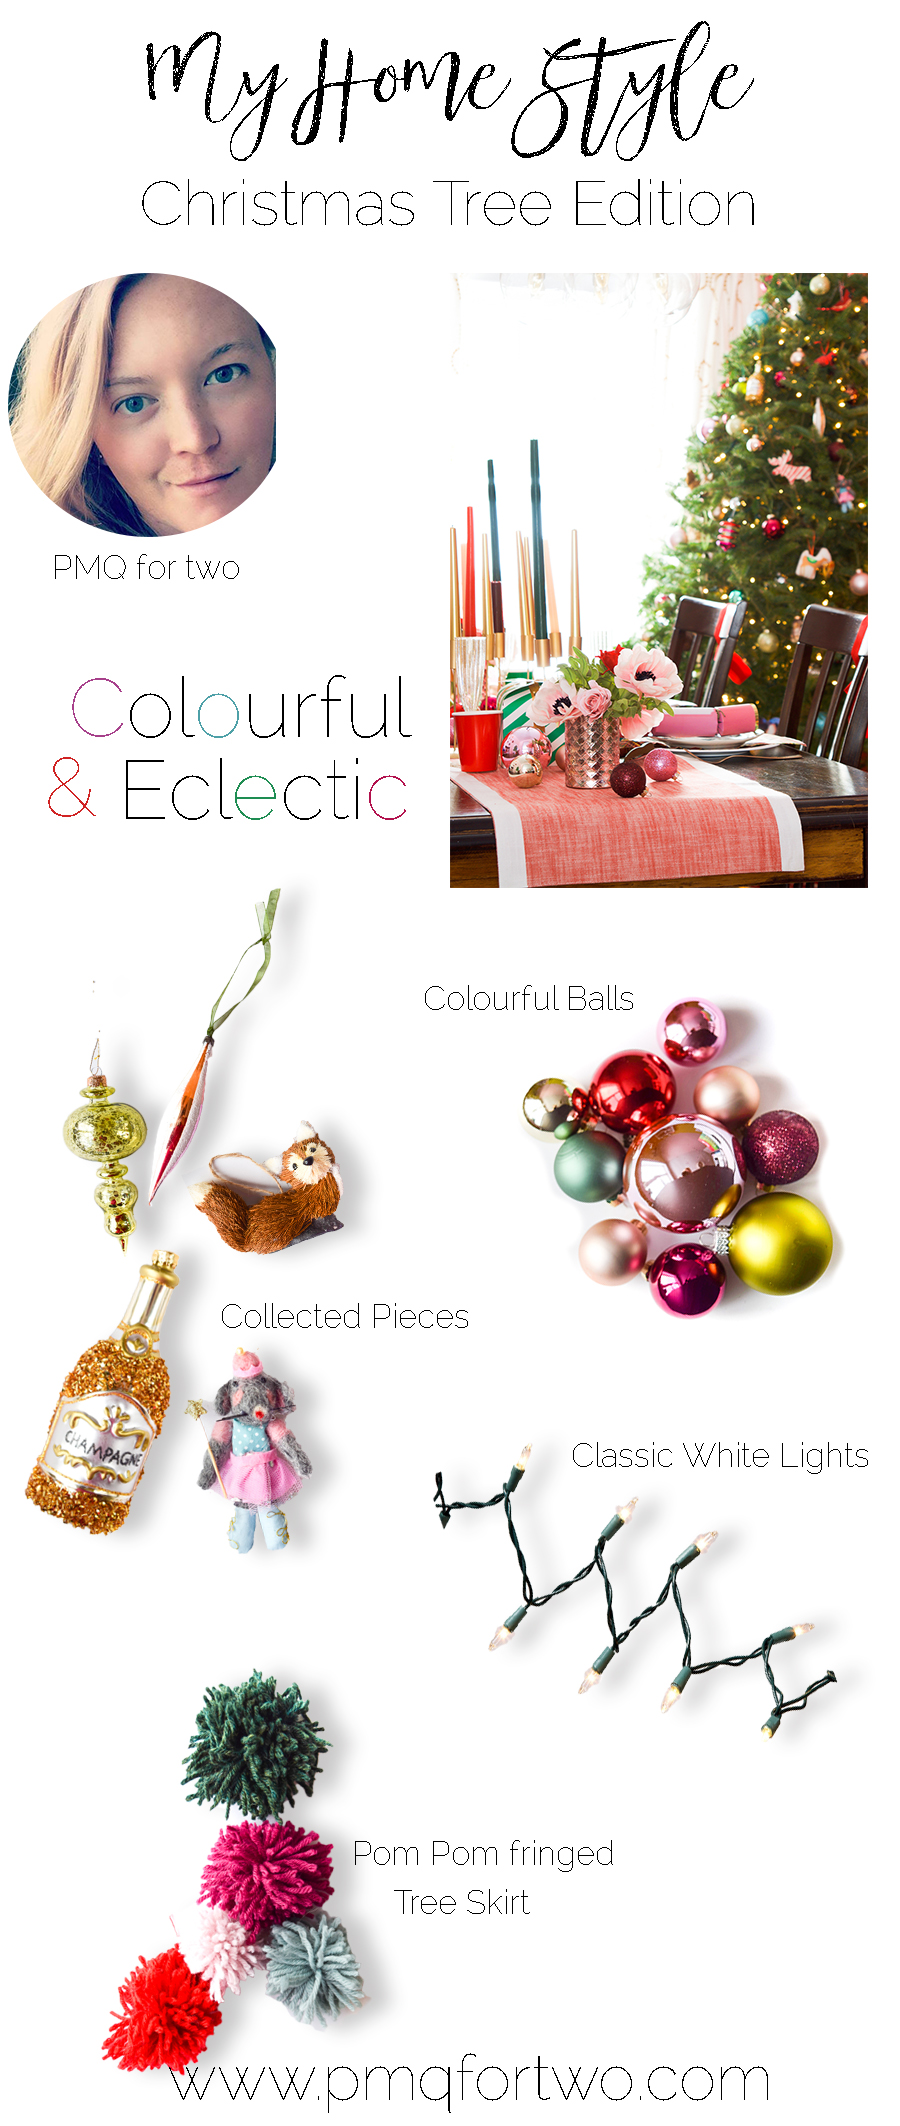 pmq-for-two-colourful-eclectic-tree